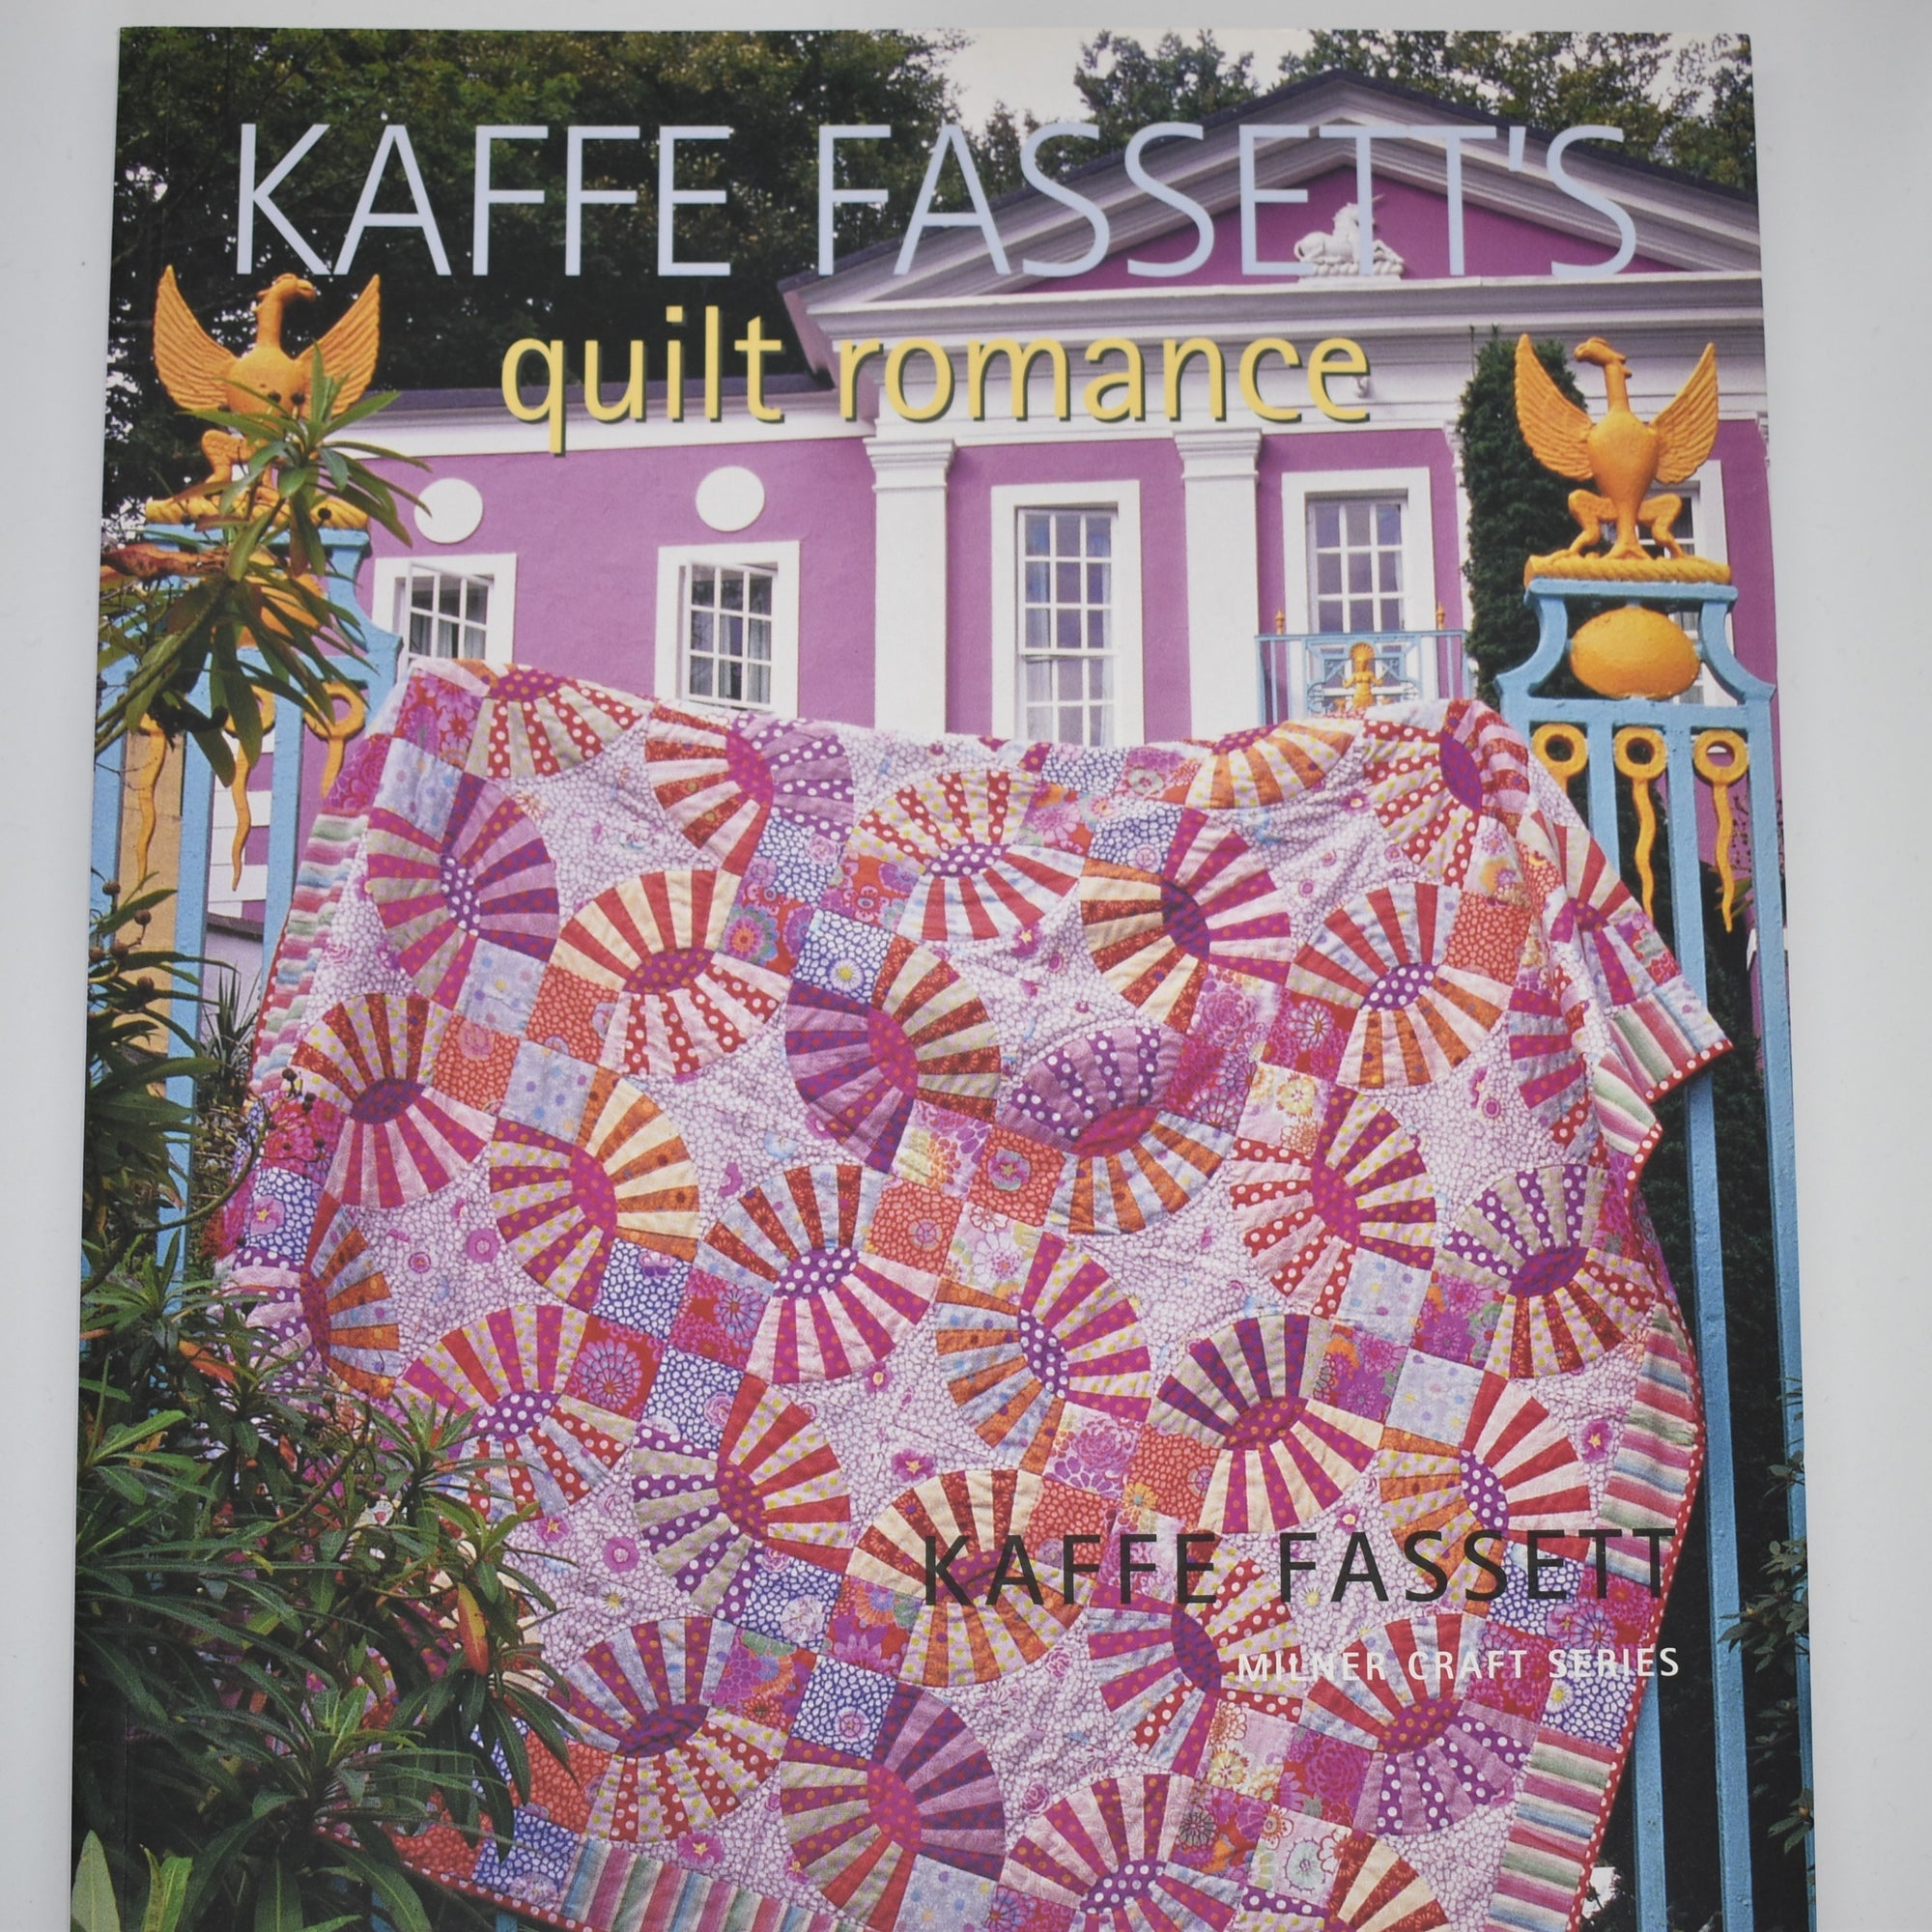 Kaffe Fassett's Quilt Romance book at Calico and Ivy